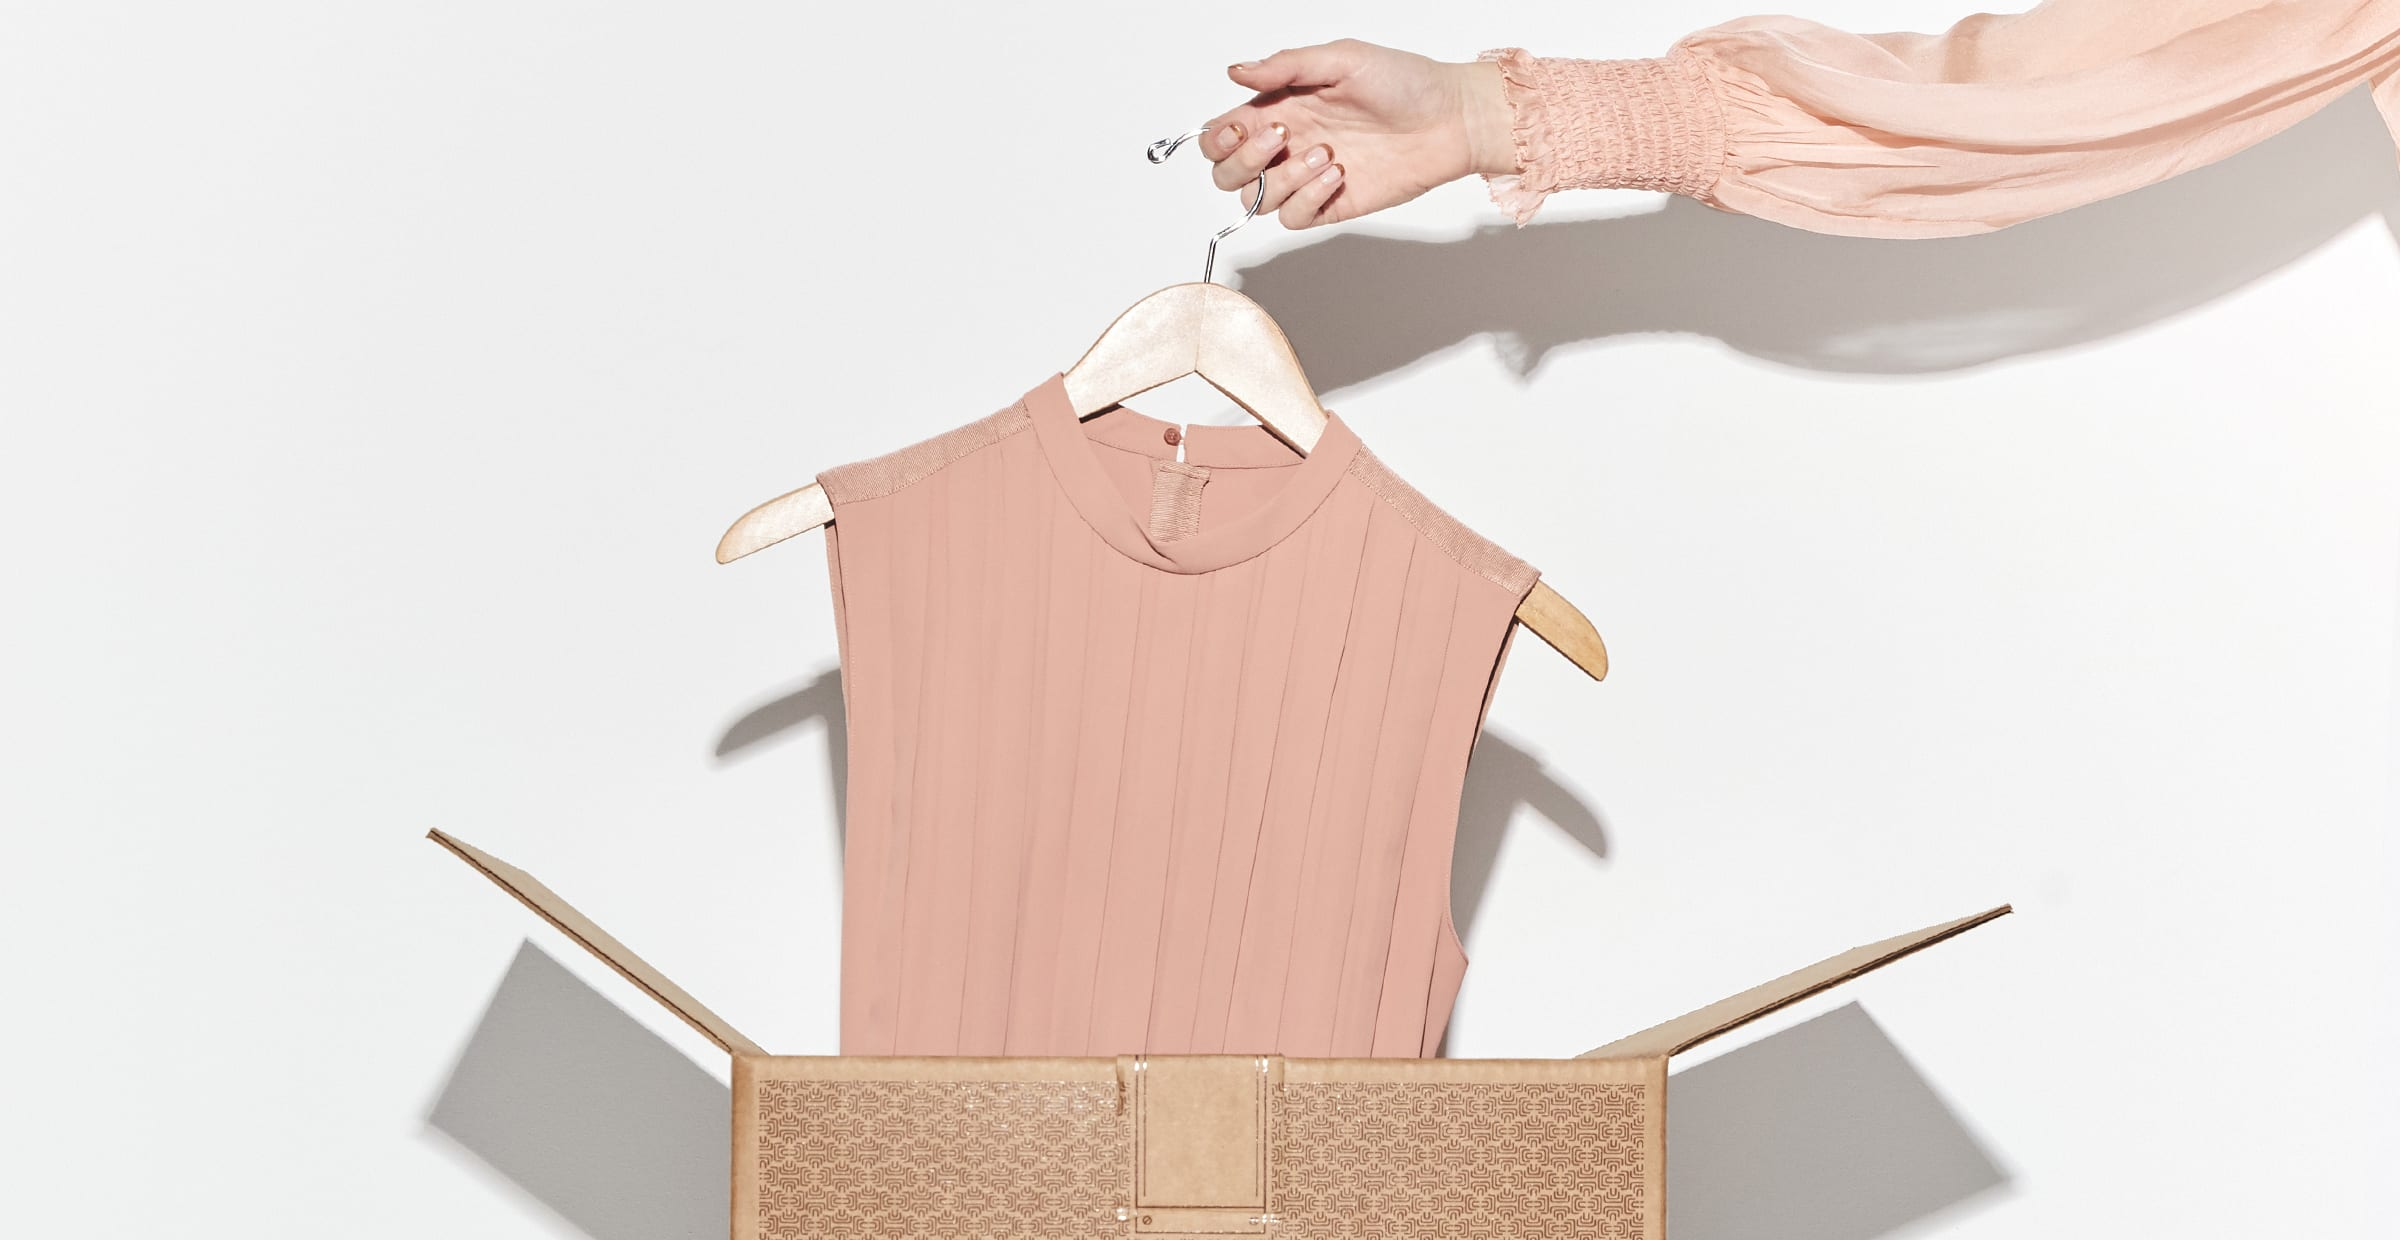 Removing a pink blouse from a trunk